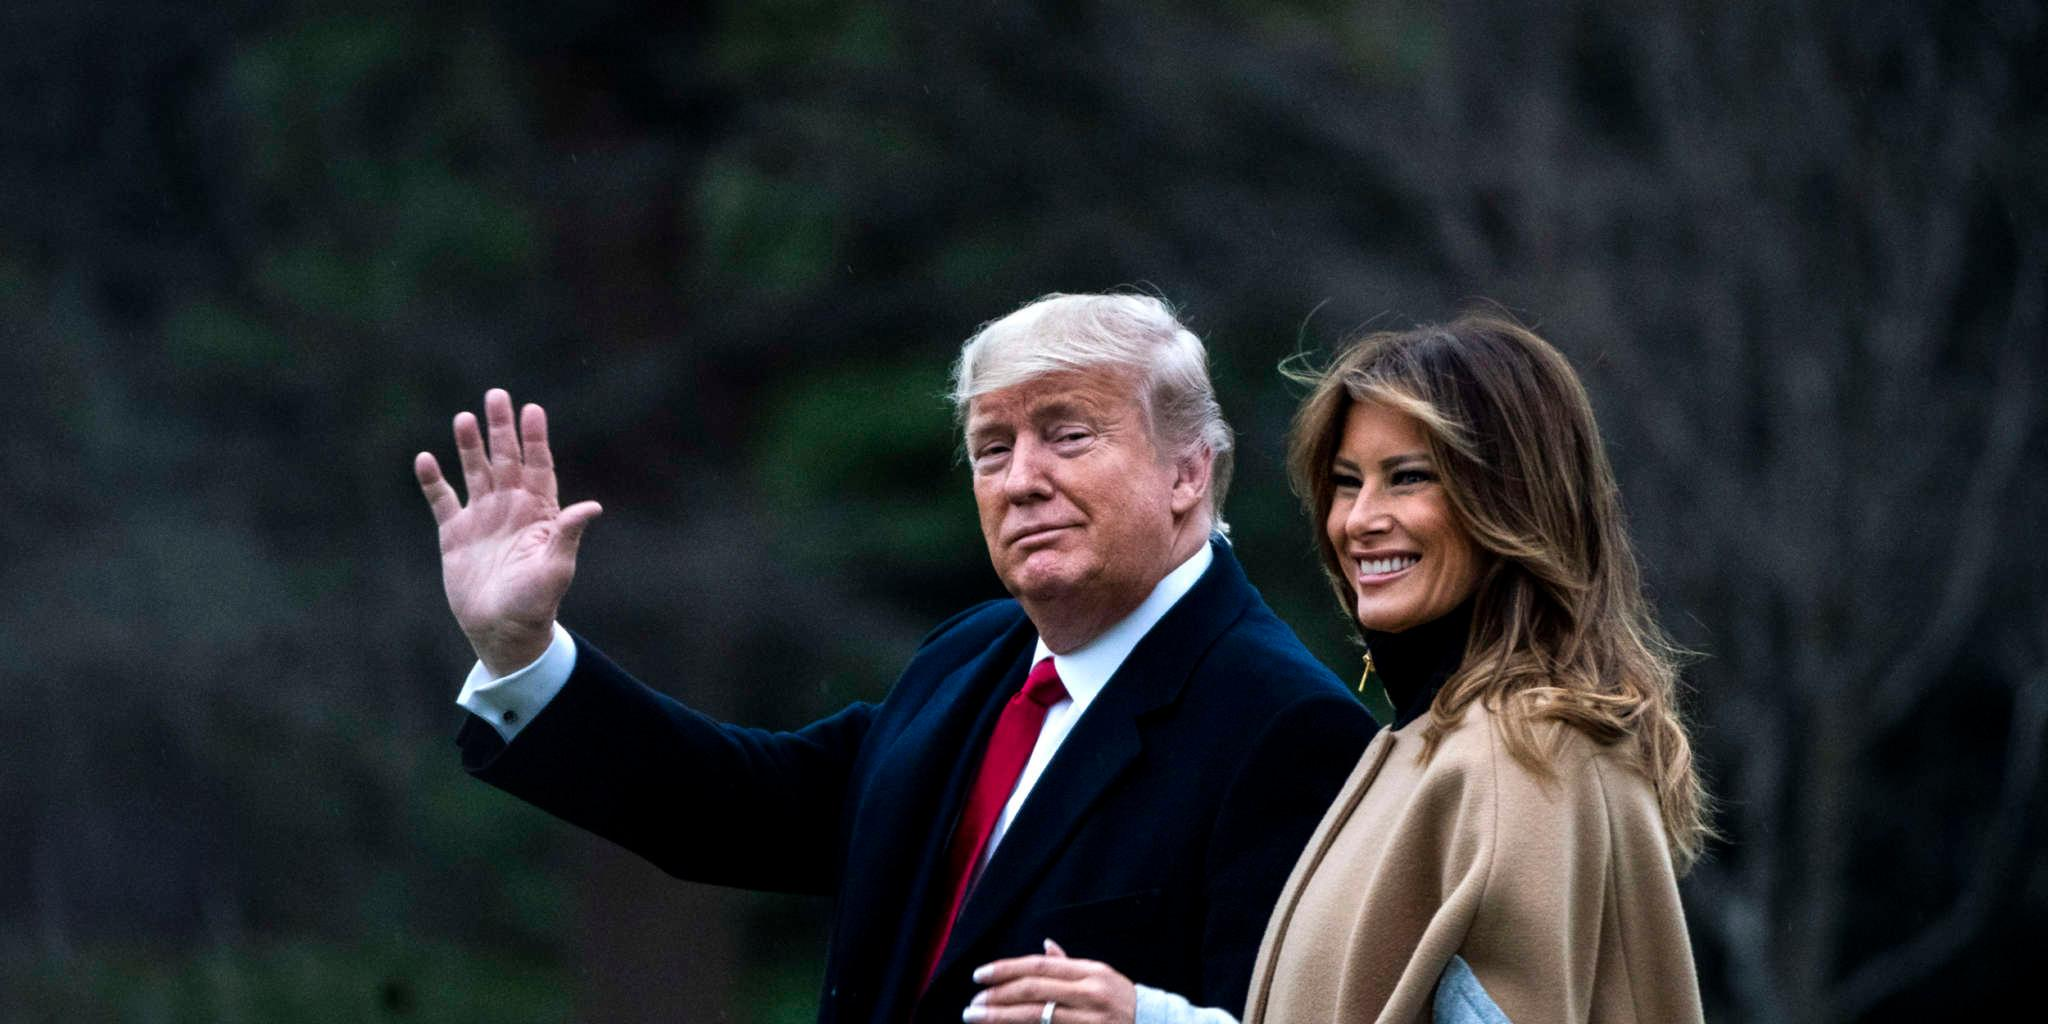 Melania Trump Avoids Holding Donald Trump's Hand Multiple Times In New Video!